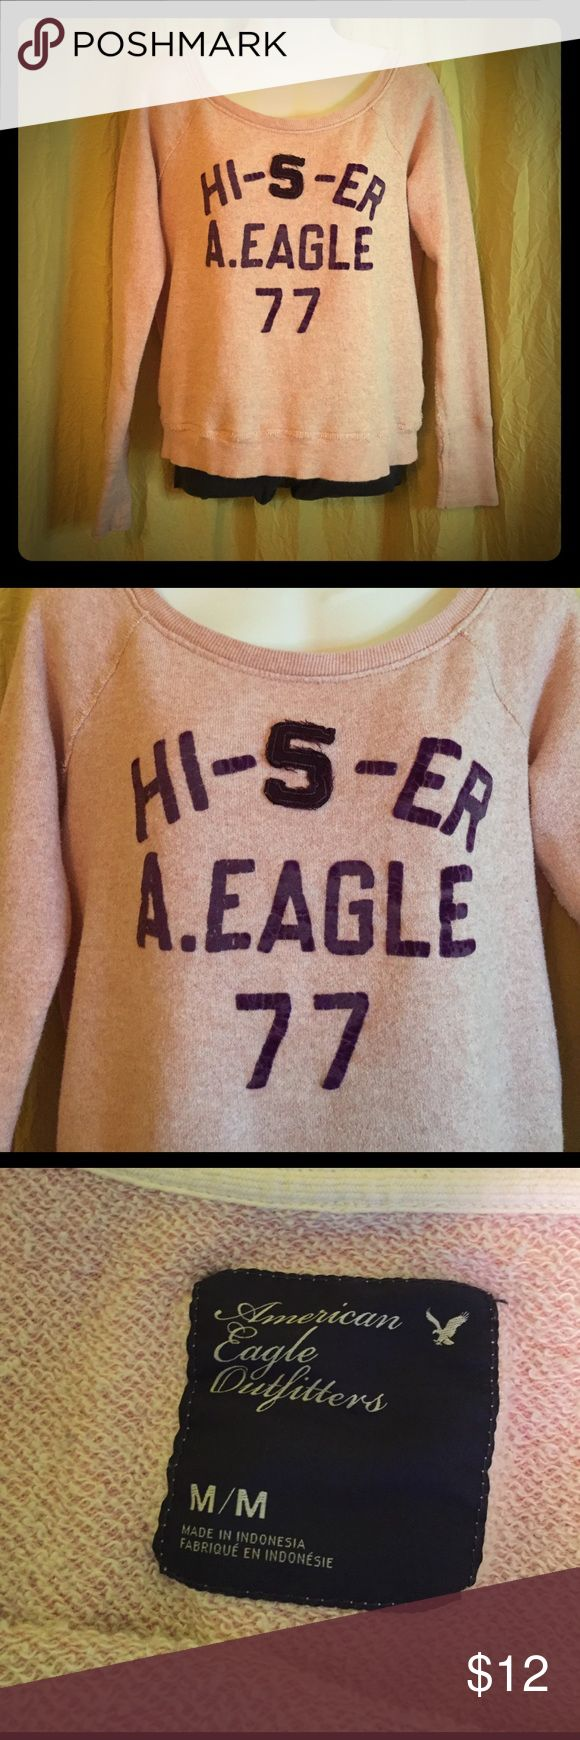 American Eagle sweatshirt Light pink American Eagle sweatshirt with purple lettering. Some cracking to the lettering gives it a worn in look. Very comfy! American Eagle Outfitters Tops Sweatshirts & Hoodies